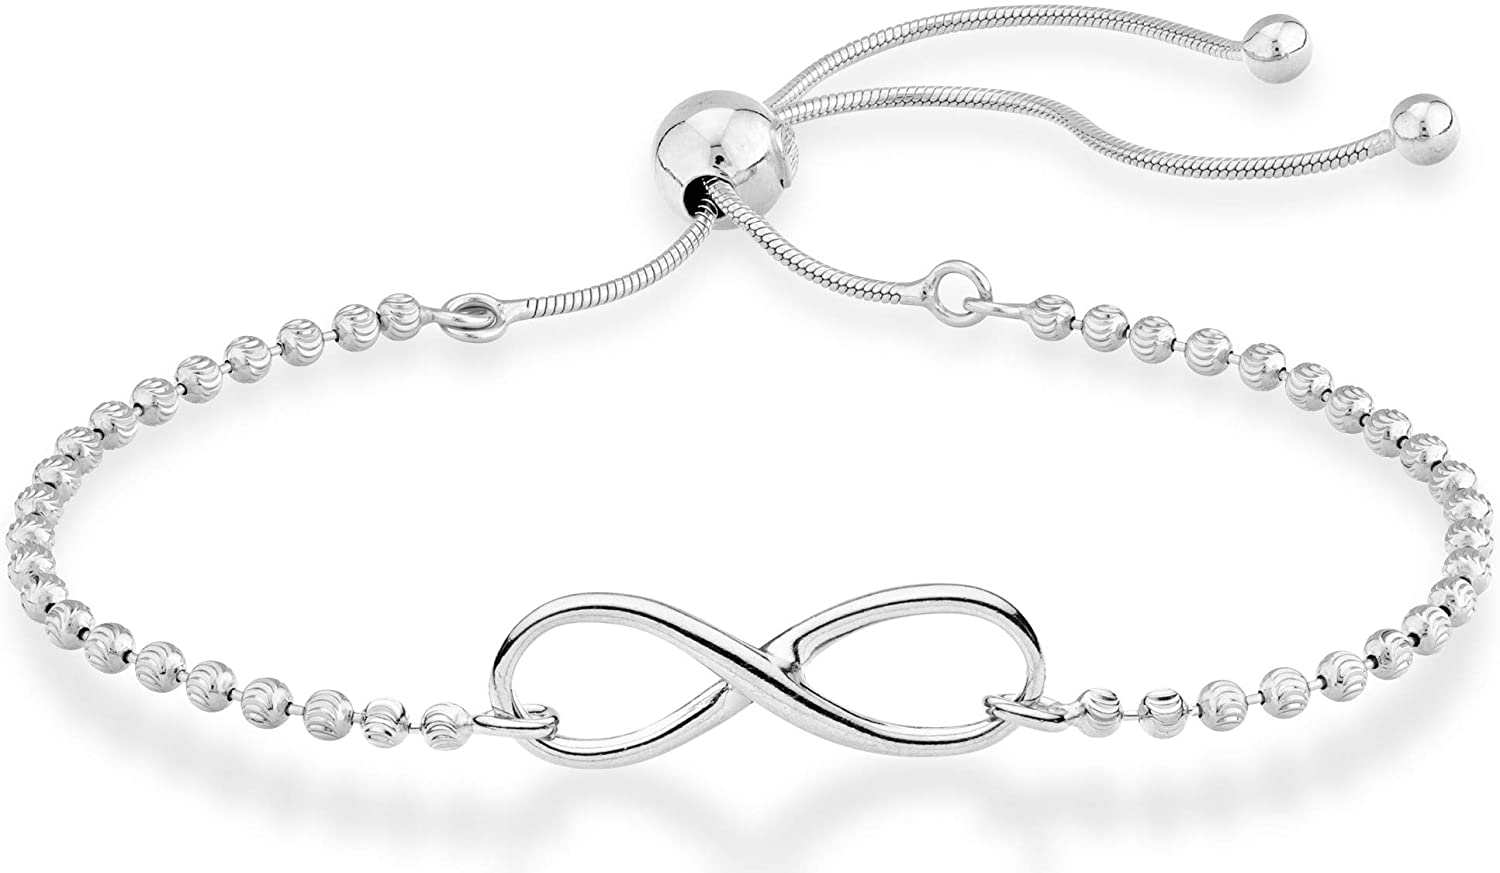 Miabella 925 Sterling Silver Infinity Adjustable Bolo Beaded Ball Chain Bracelet for Women Teen Girls, Choice of 18K Gold Plated or Silver Made in Italy